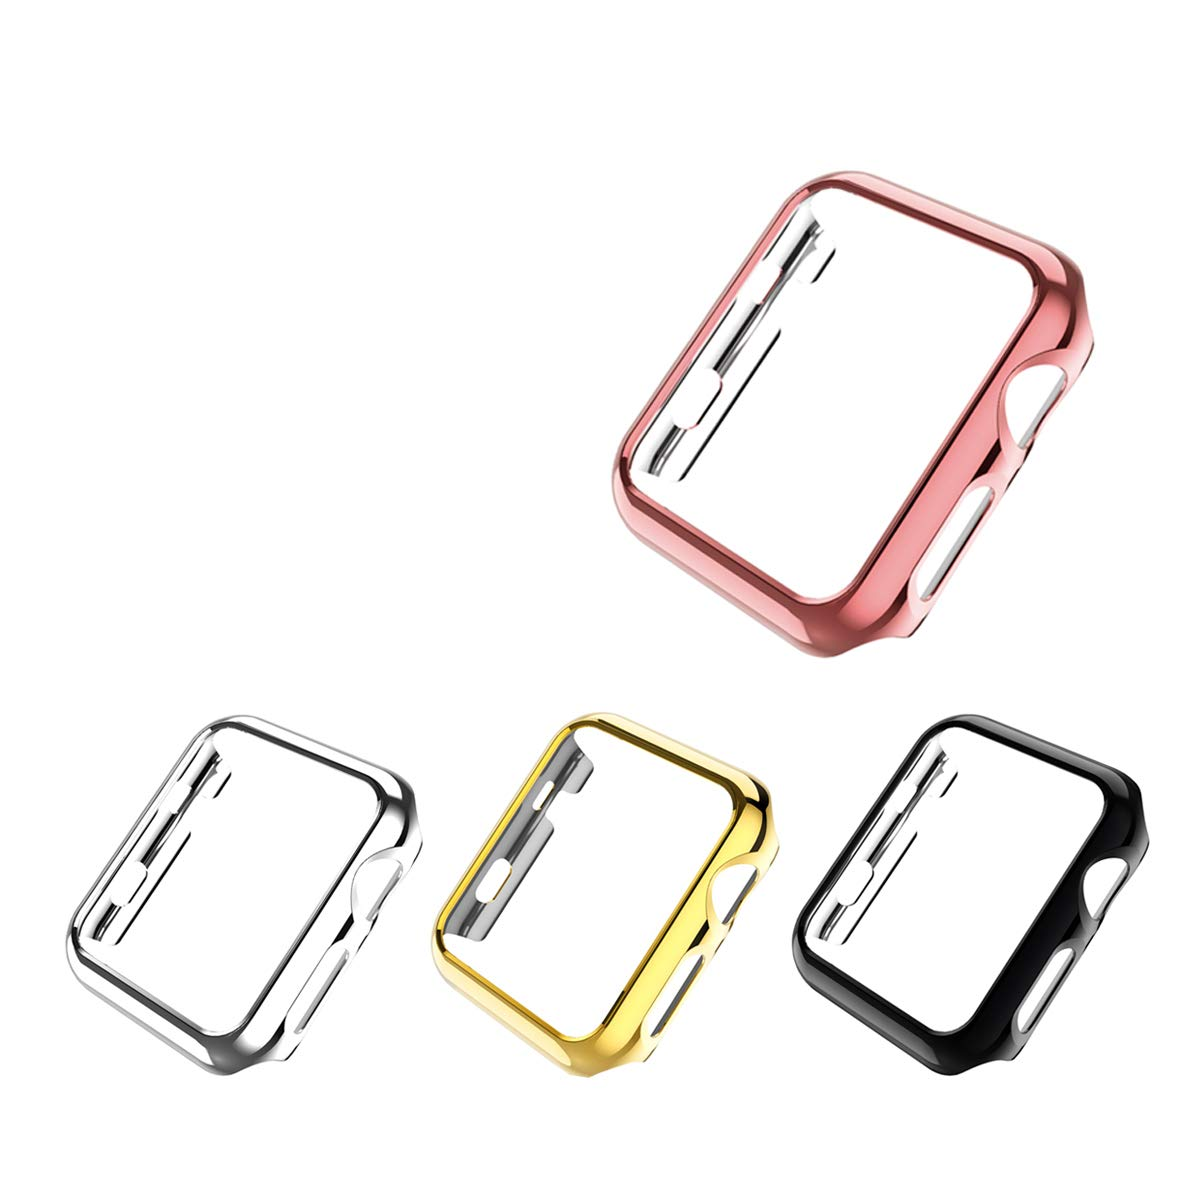 Leotop Compatible with Apple Watch Case 44mm 40mm, Super Thin PC Plated Bumper Protector Shiny Cover Lightweight Slim Shell Shockproof Frame Accessories Compatible iWatch Series 4 (4 Color Pack, 44mm)